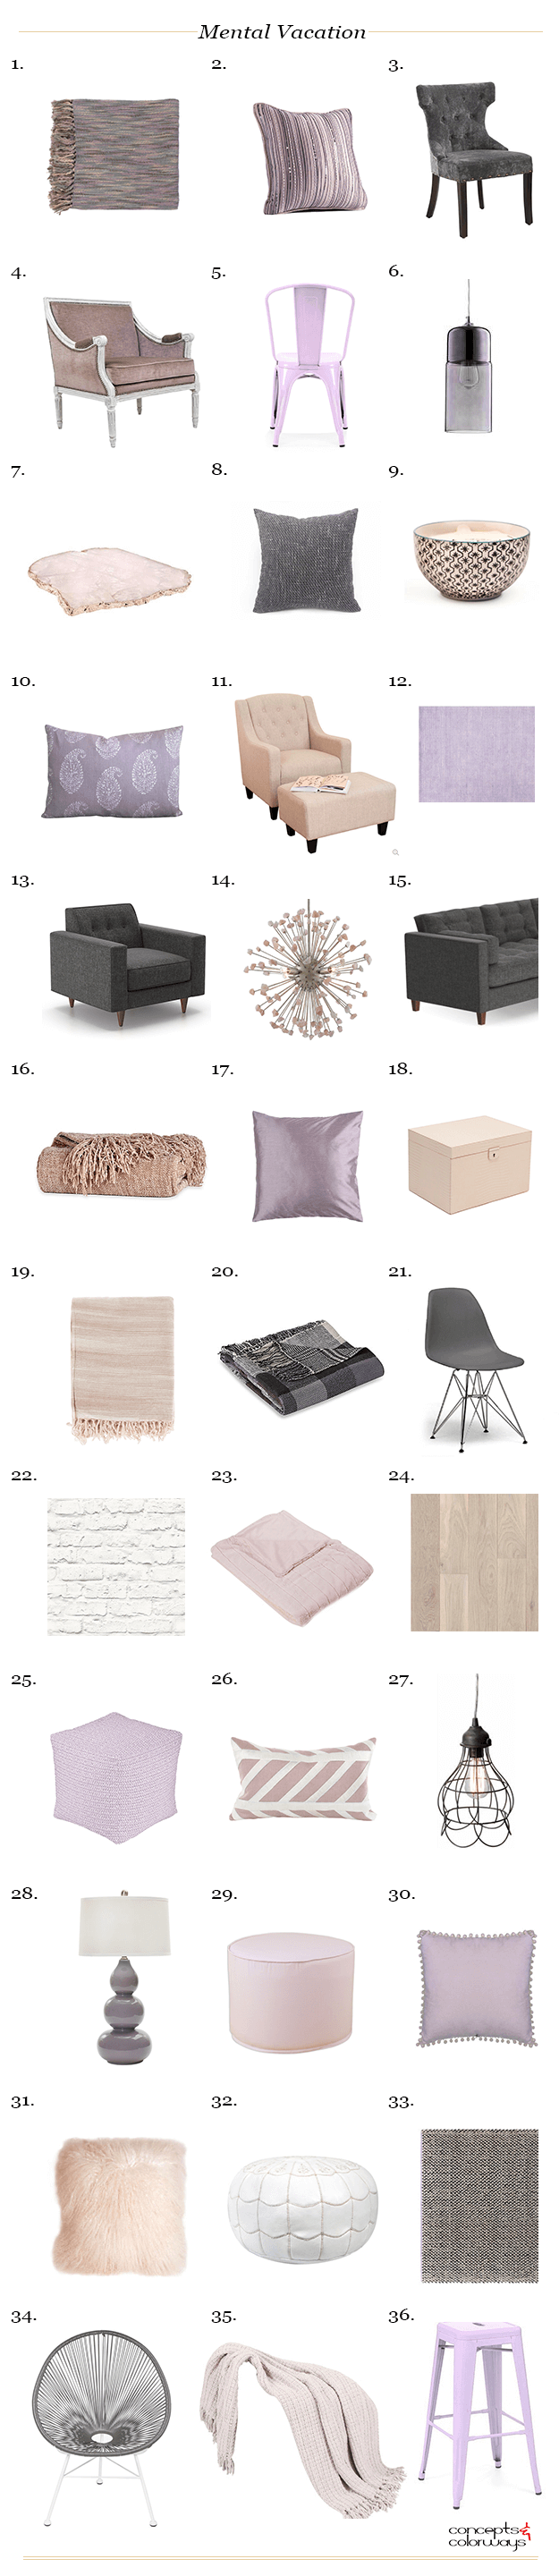 mental vacation interior design product roundup